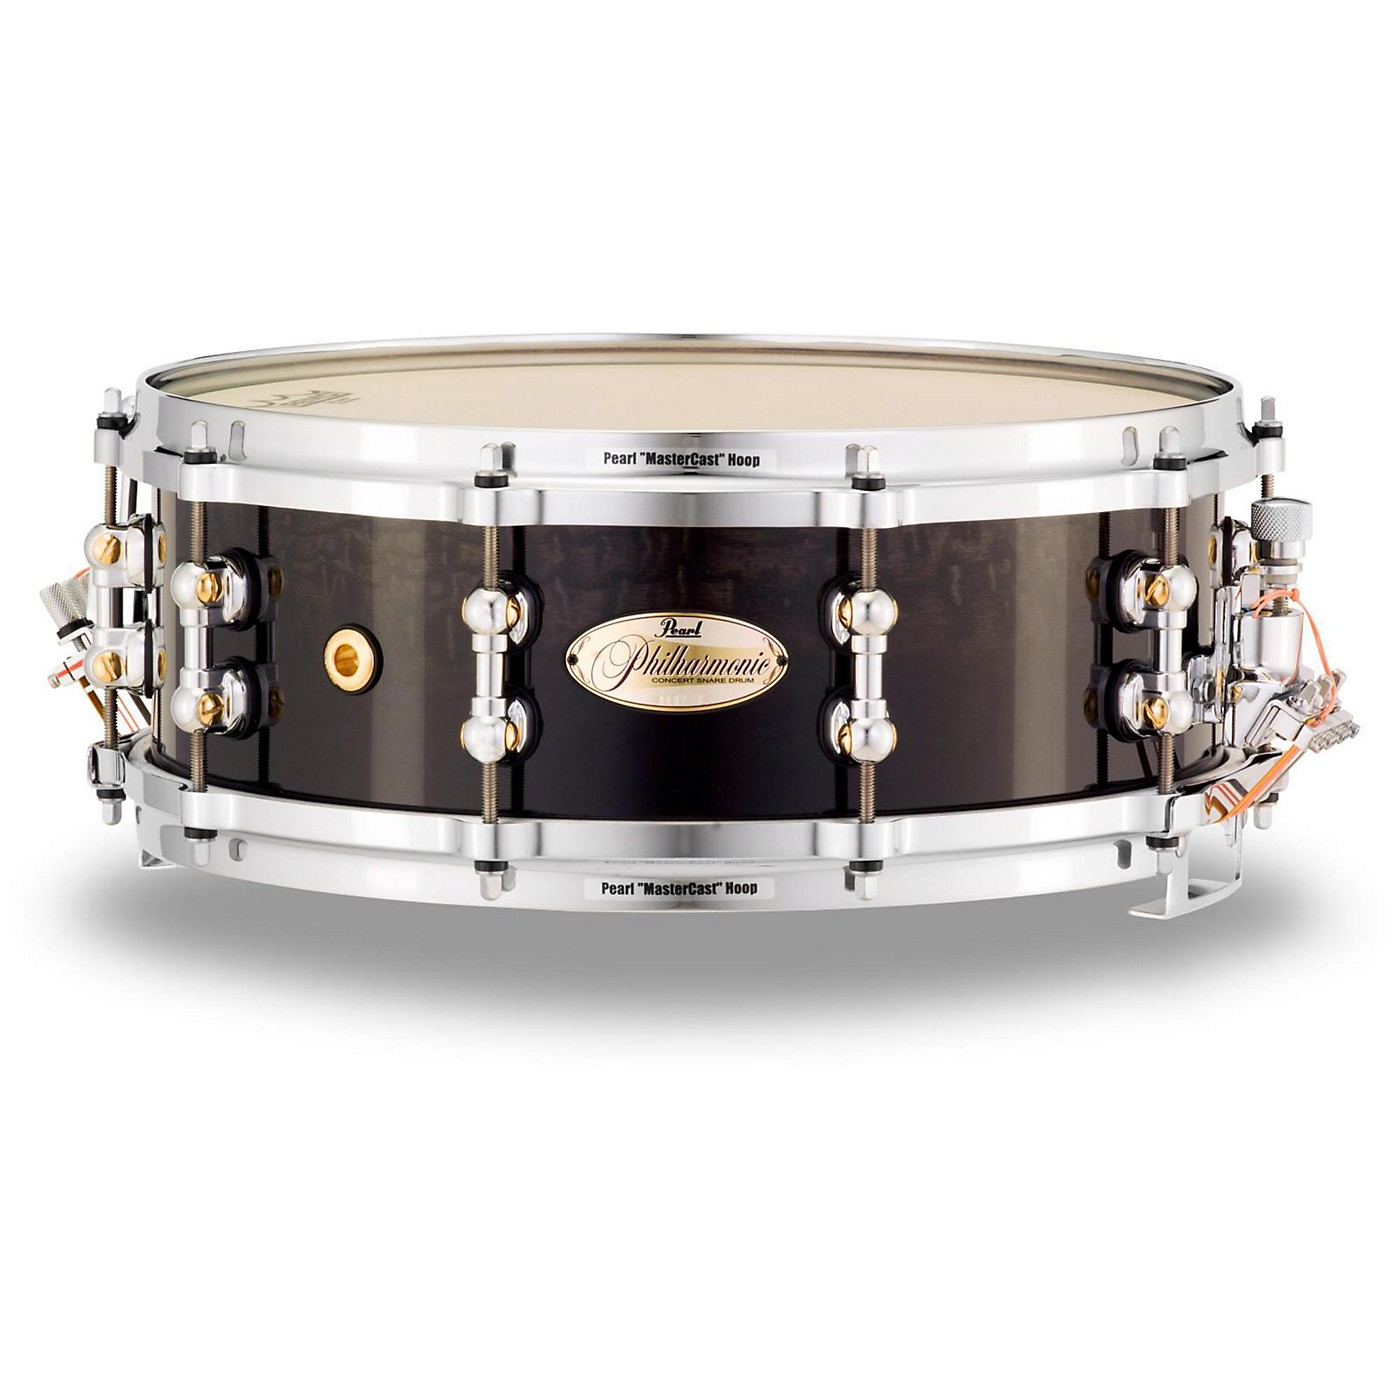 Pearl Limited Edition Philharmonic Tamo Ash/Maple/Birch Snare Drum thumbnail